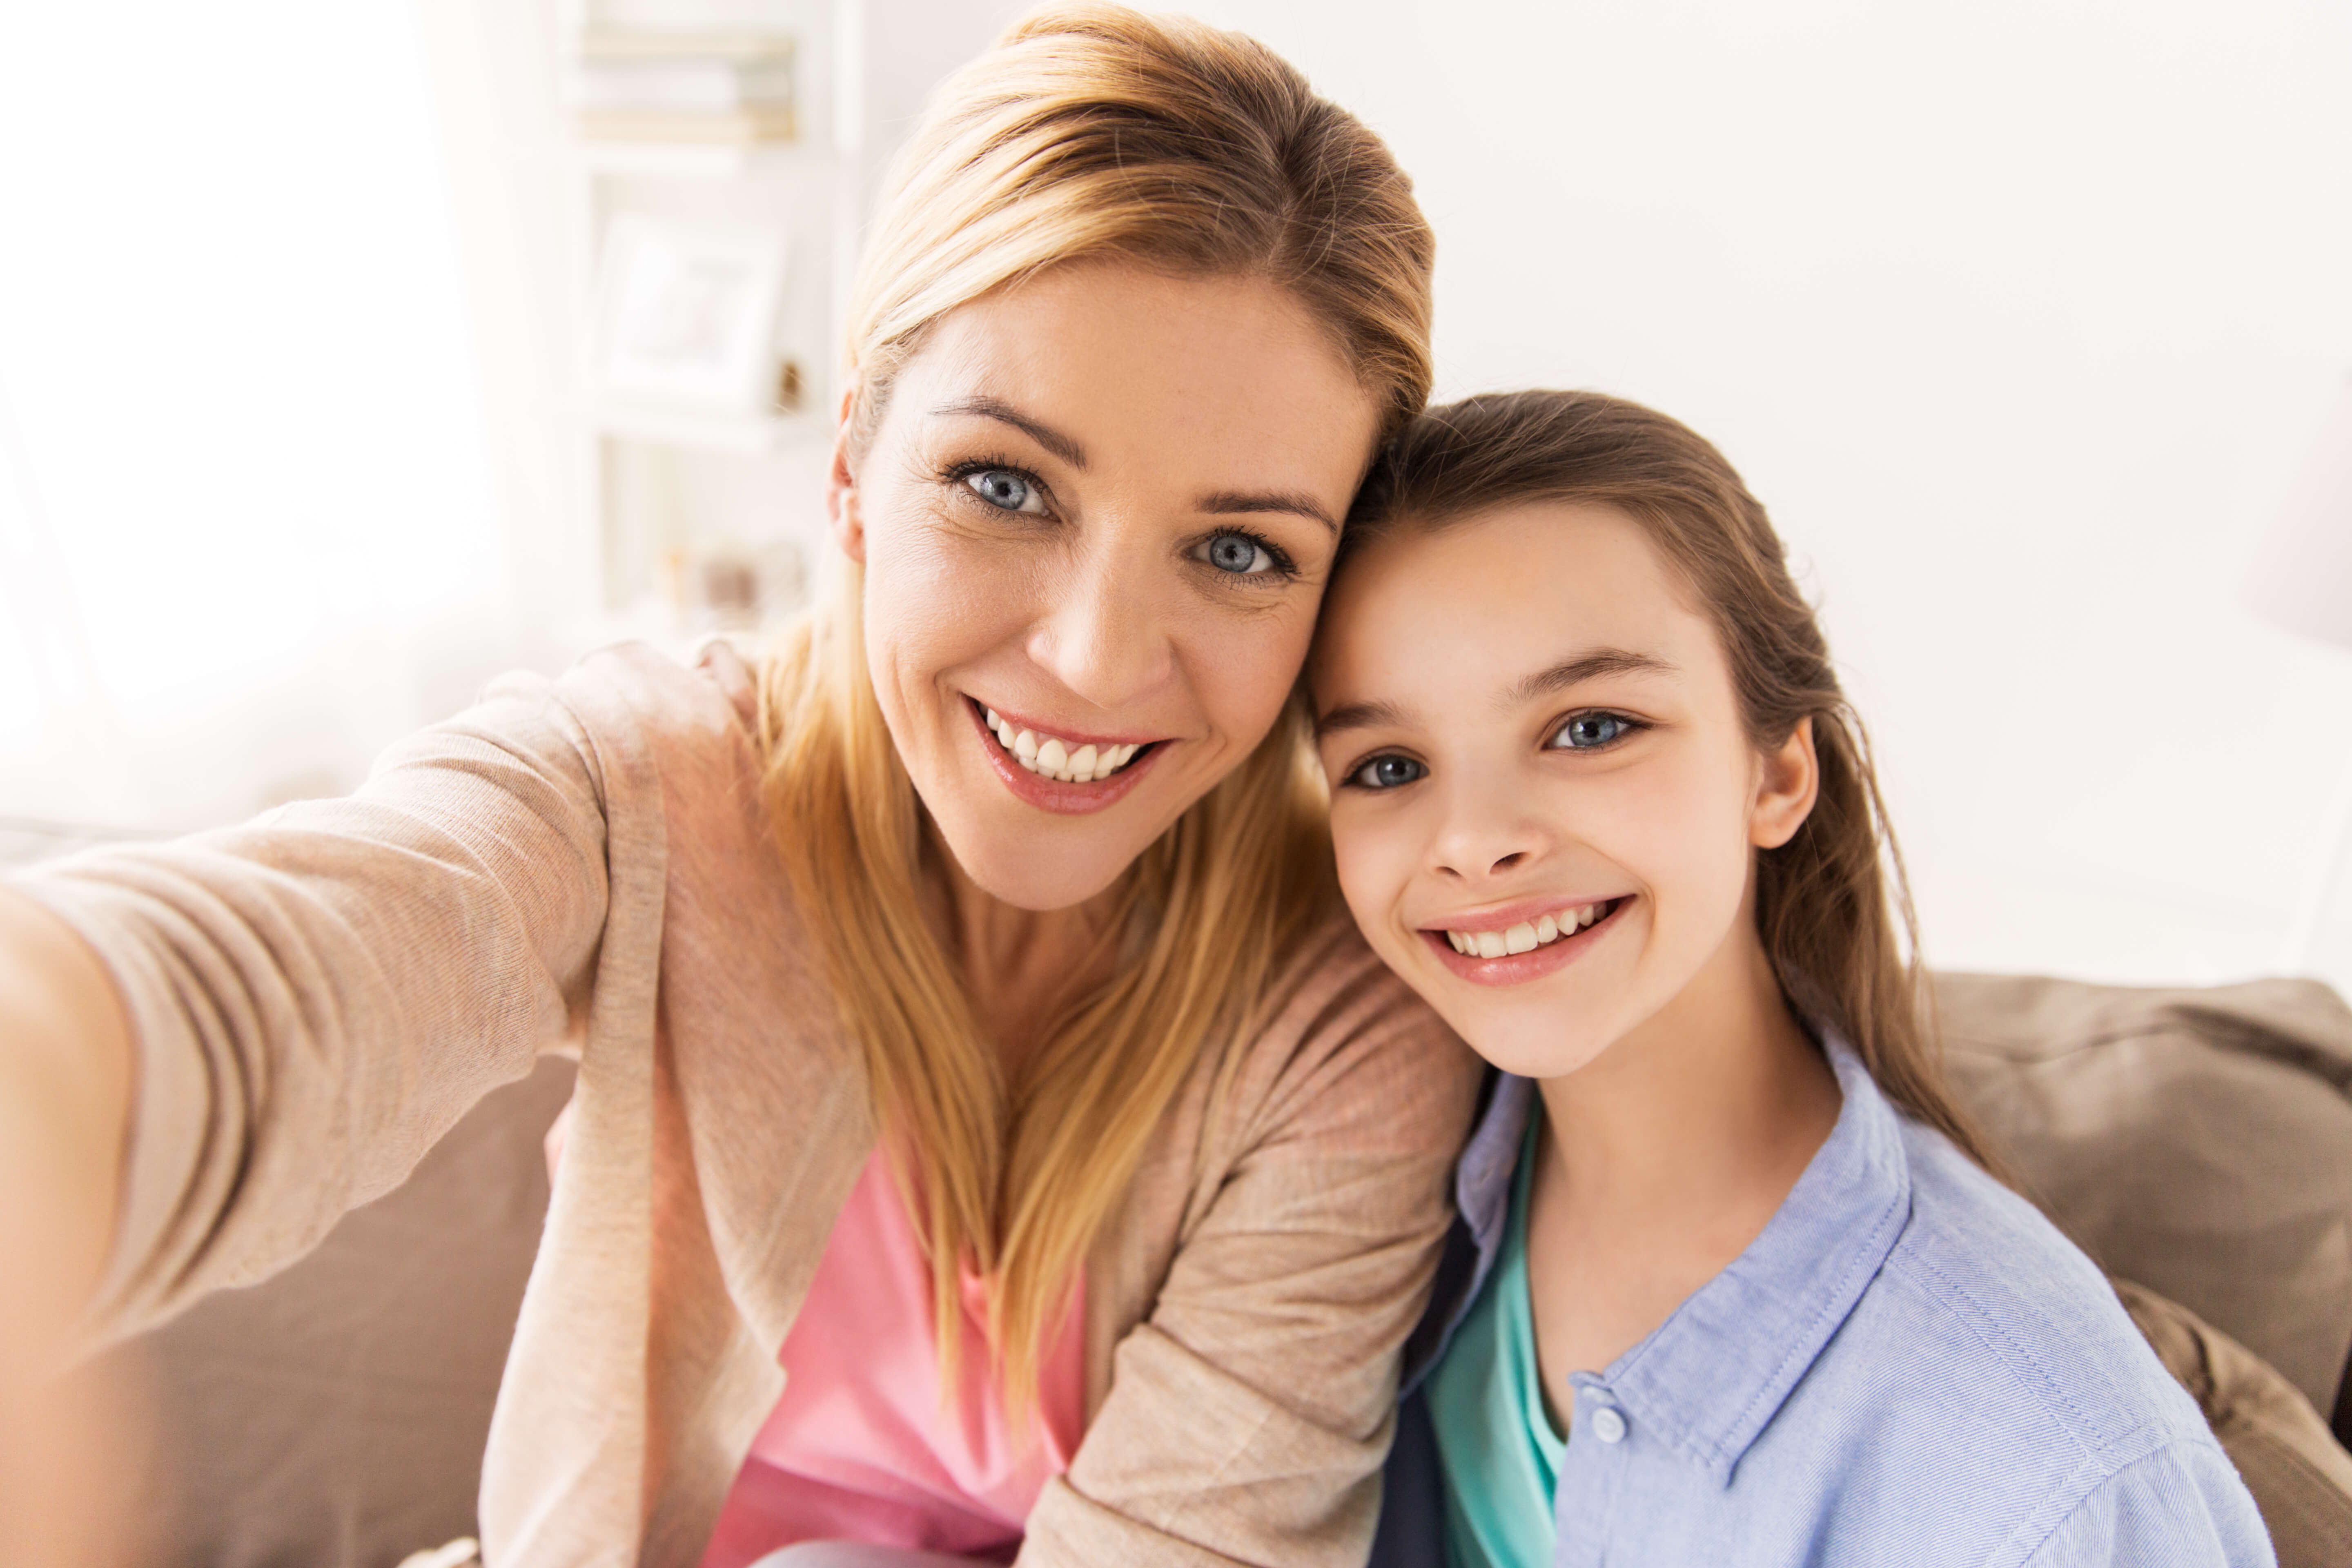 happy-family-taking-selfie-at-home-PV2FSUC-1